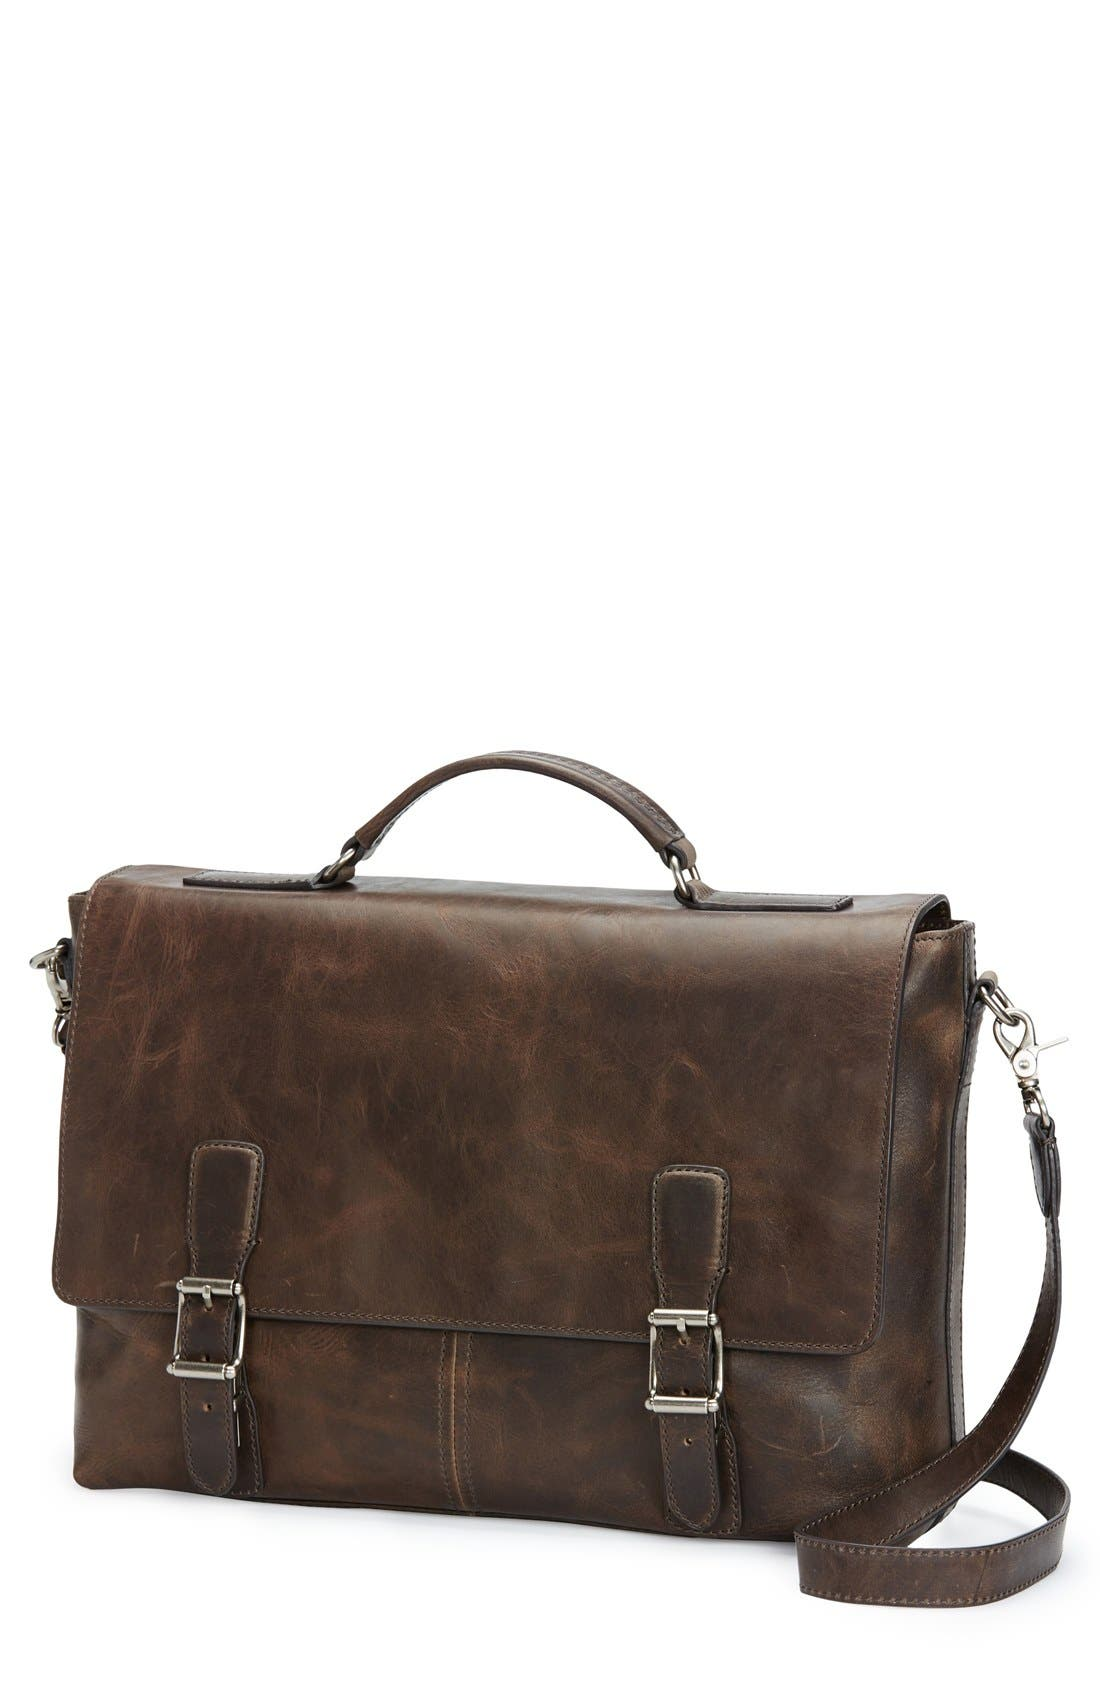 'LOGAN' LEATHER BRIEFCASE - BROWN